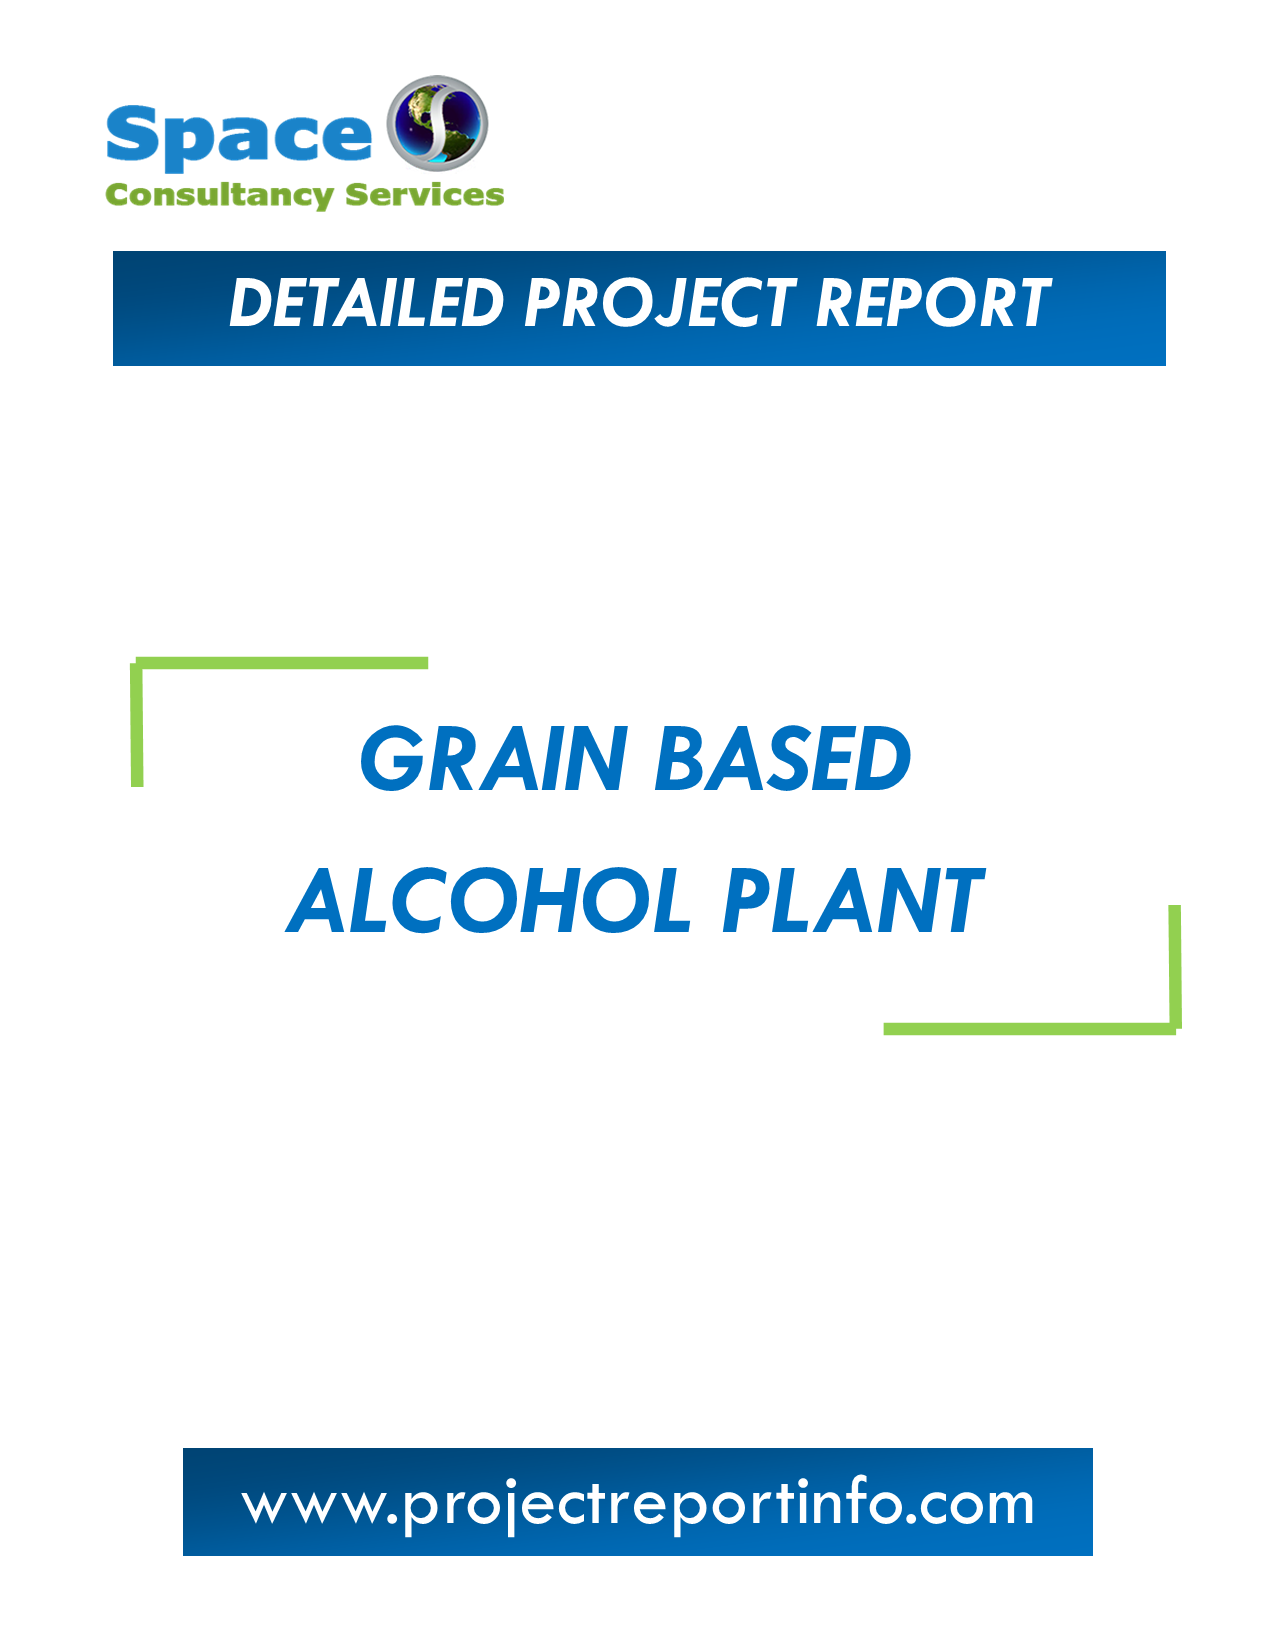 Project Report on Grain Based Alcohol